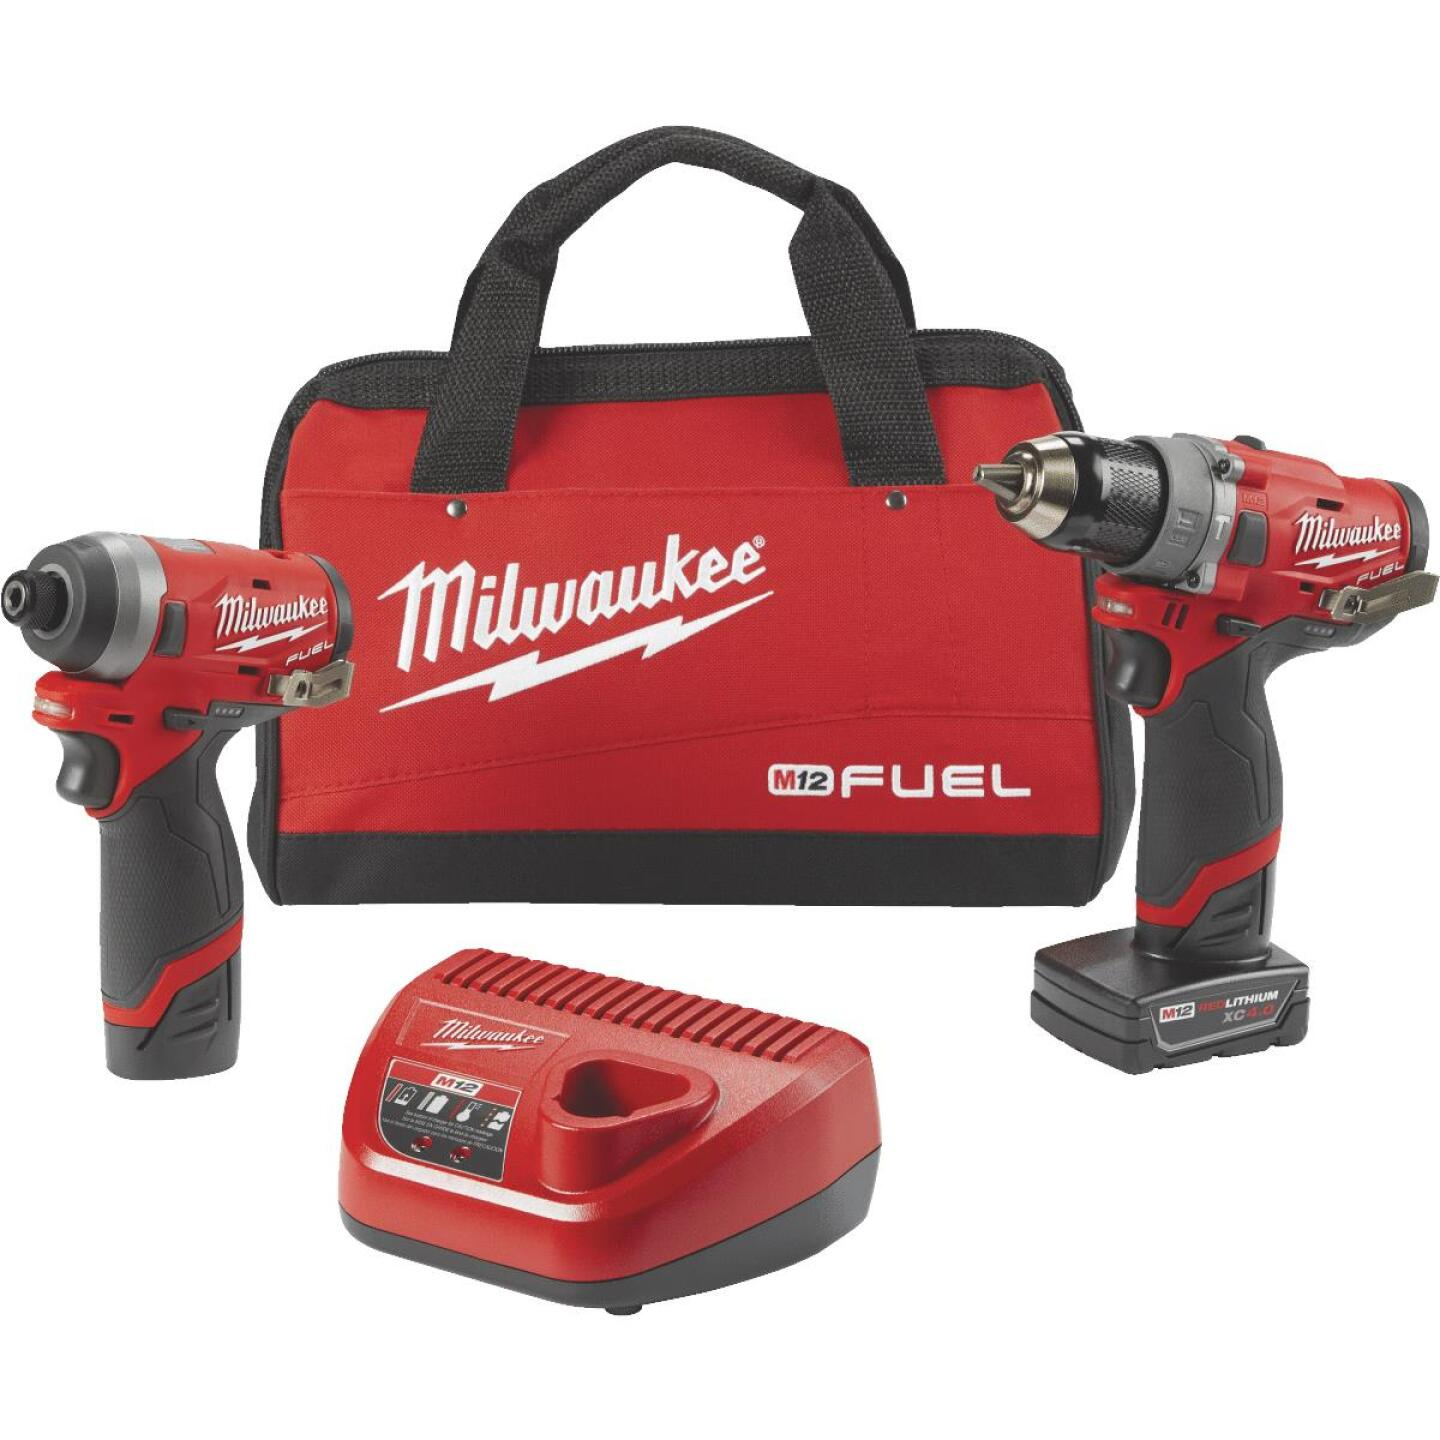 Milwaukee 2-Tool M12 FUEL 12V Lithium-Ion Brushless Hammer Drill & Impact Driver Cordless Tool Combo Kit Image 1